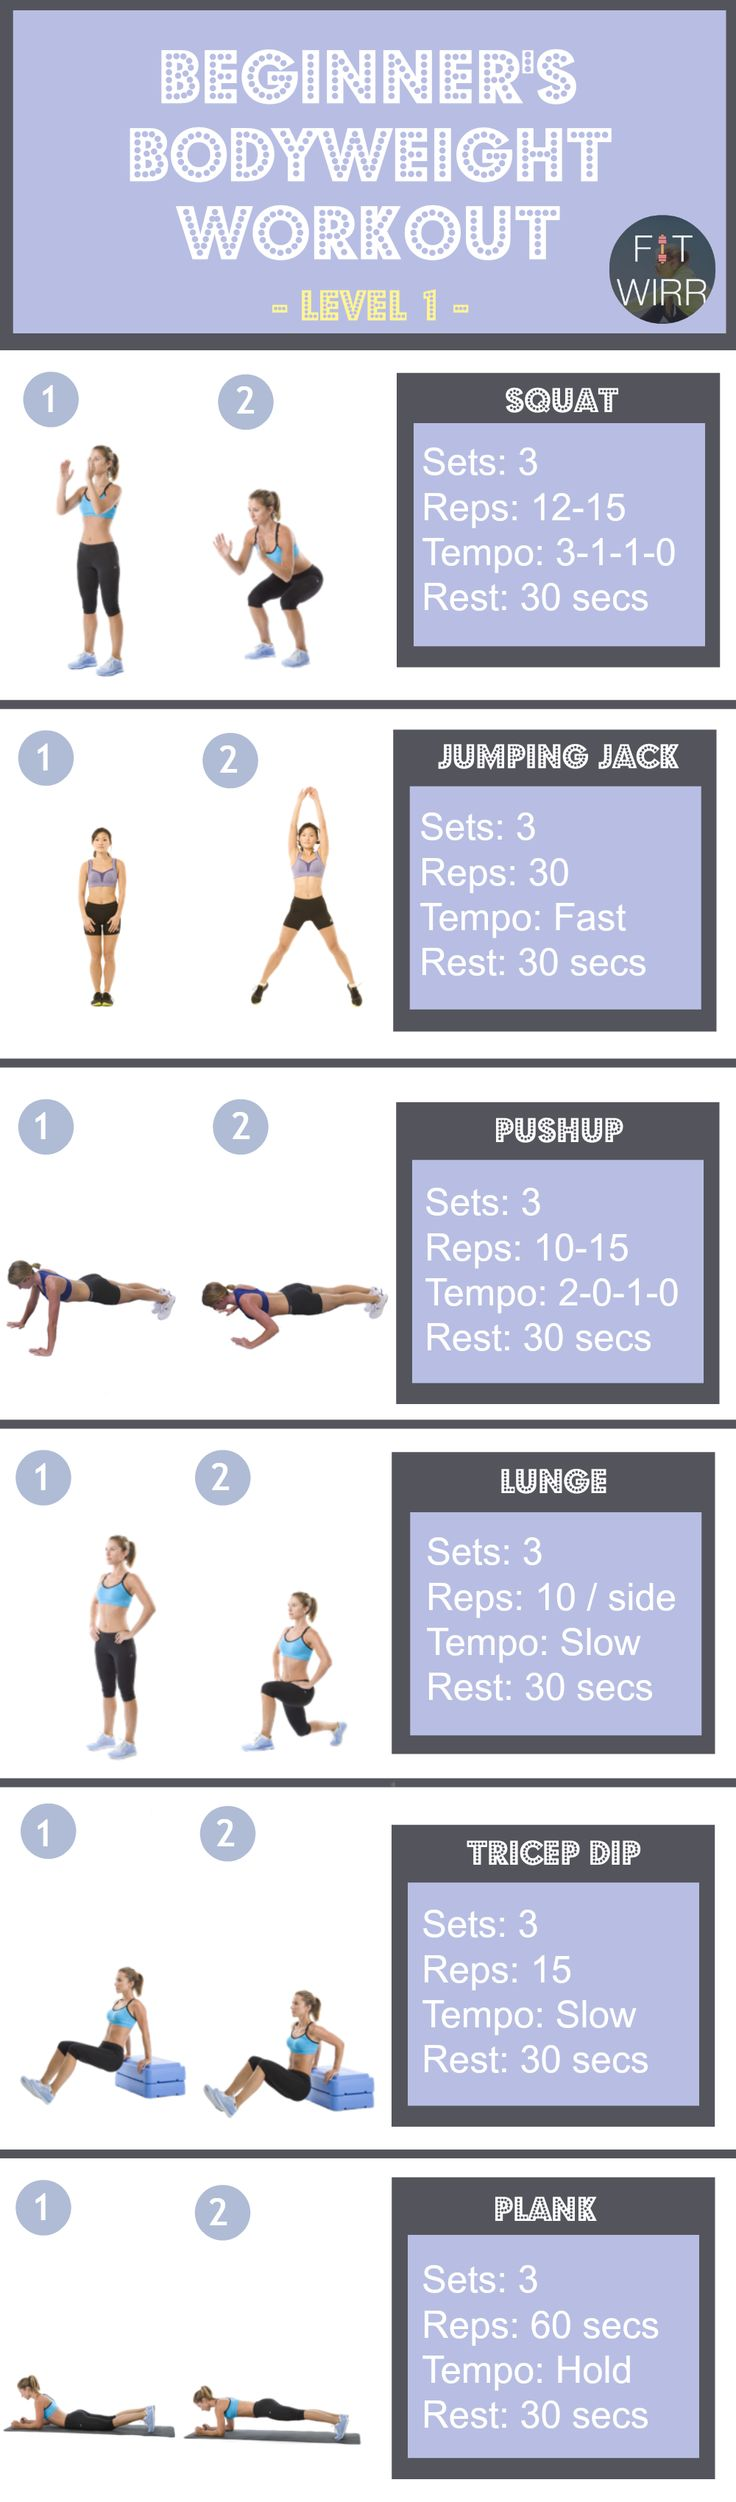 Best 25 free weight workout ideas on pinterest free weight arm basic body weight exercises for beginners level 1 no gym or fitness equipment required nvjuhfo Choice Image